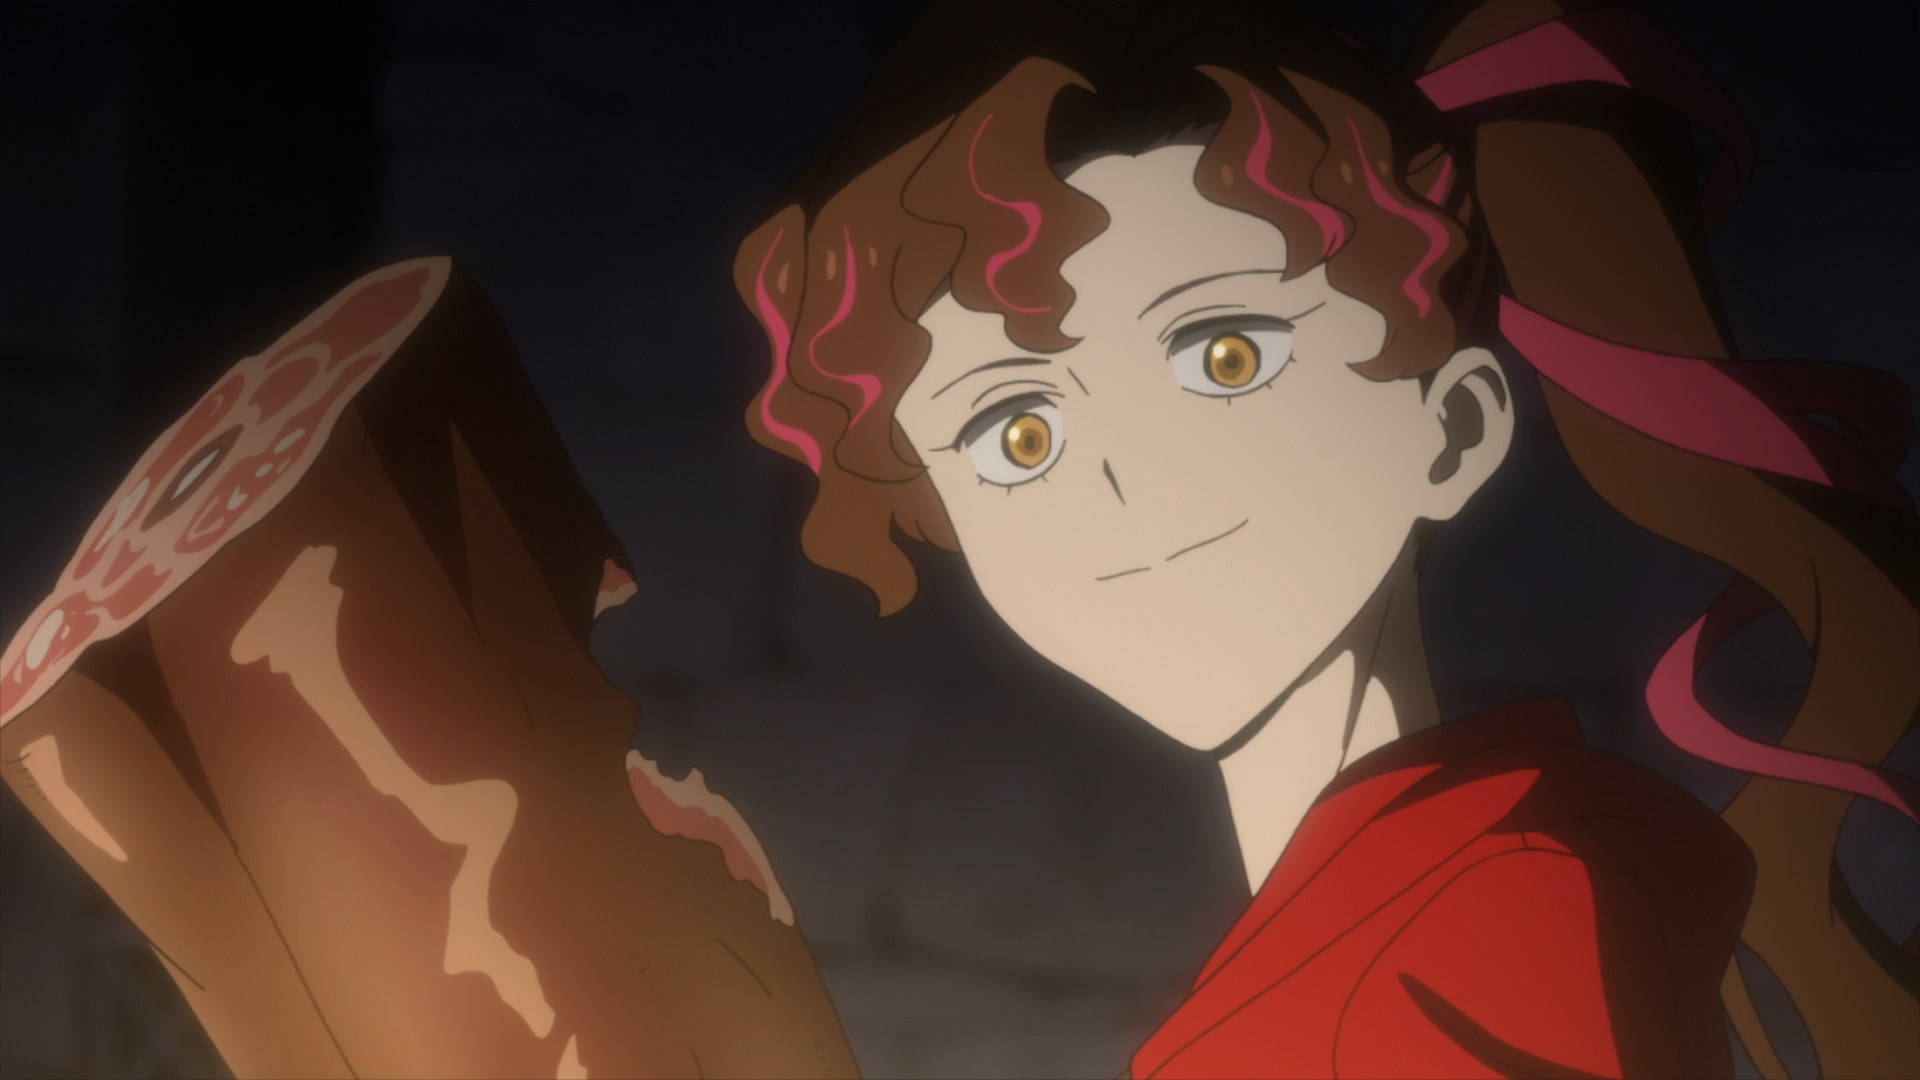 SubsPlease_Yakusoku_no_Neverland_S2_-_06_1080p_15941395-00h18m04s459t.png